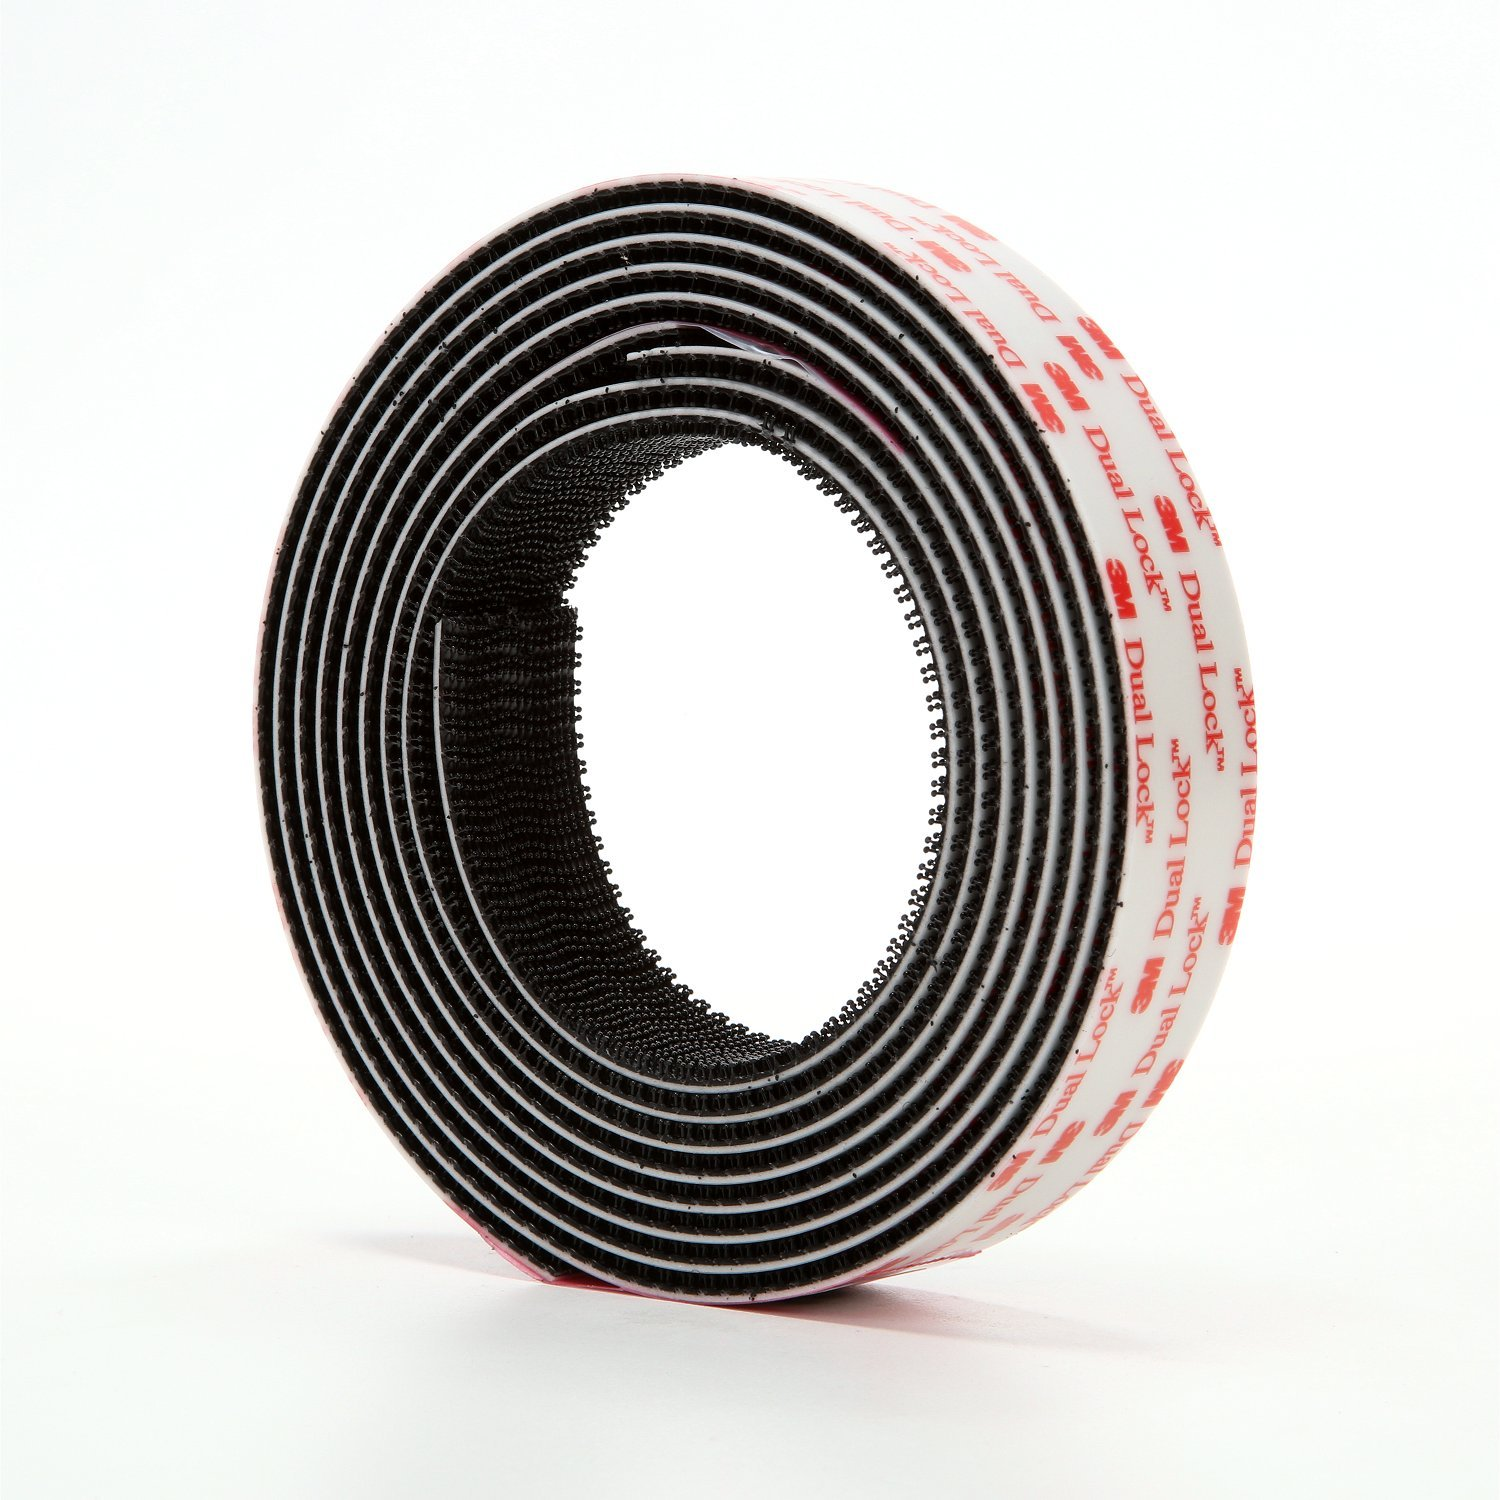 3M Dual Lock Reclosable Fastener TB3550 250/250 Black, 1 in x 10 ft (1 Mated Strip/Bag)